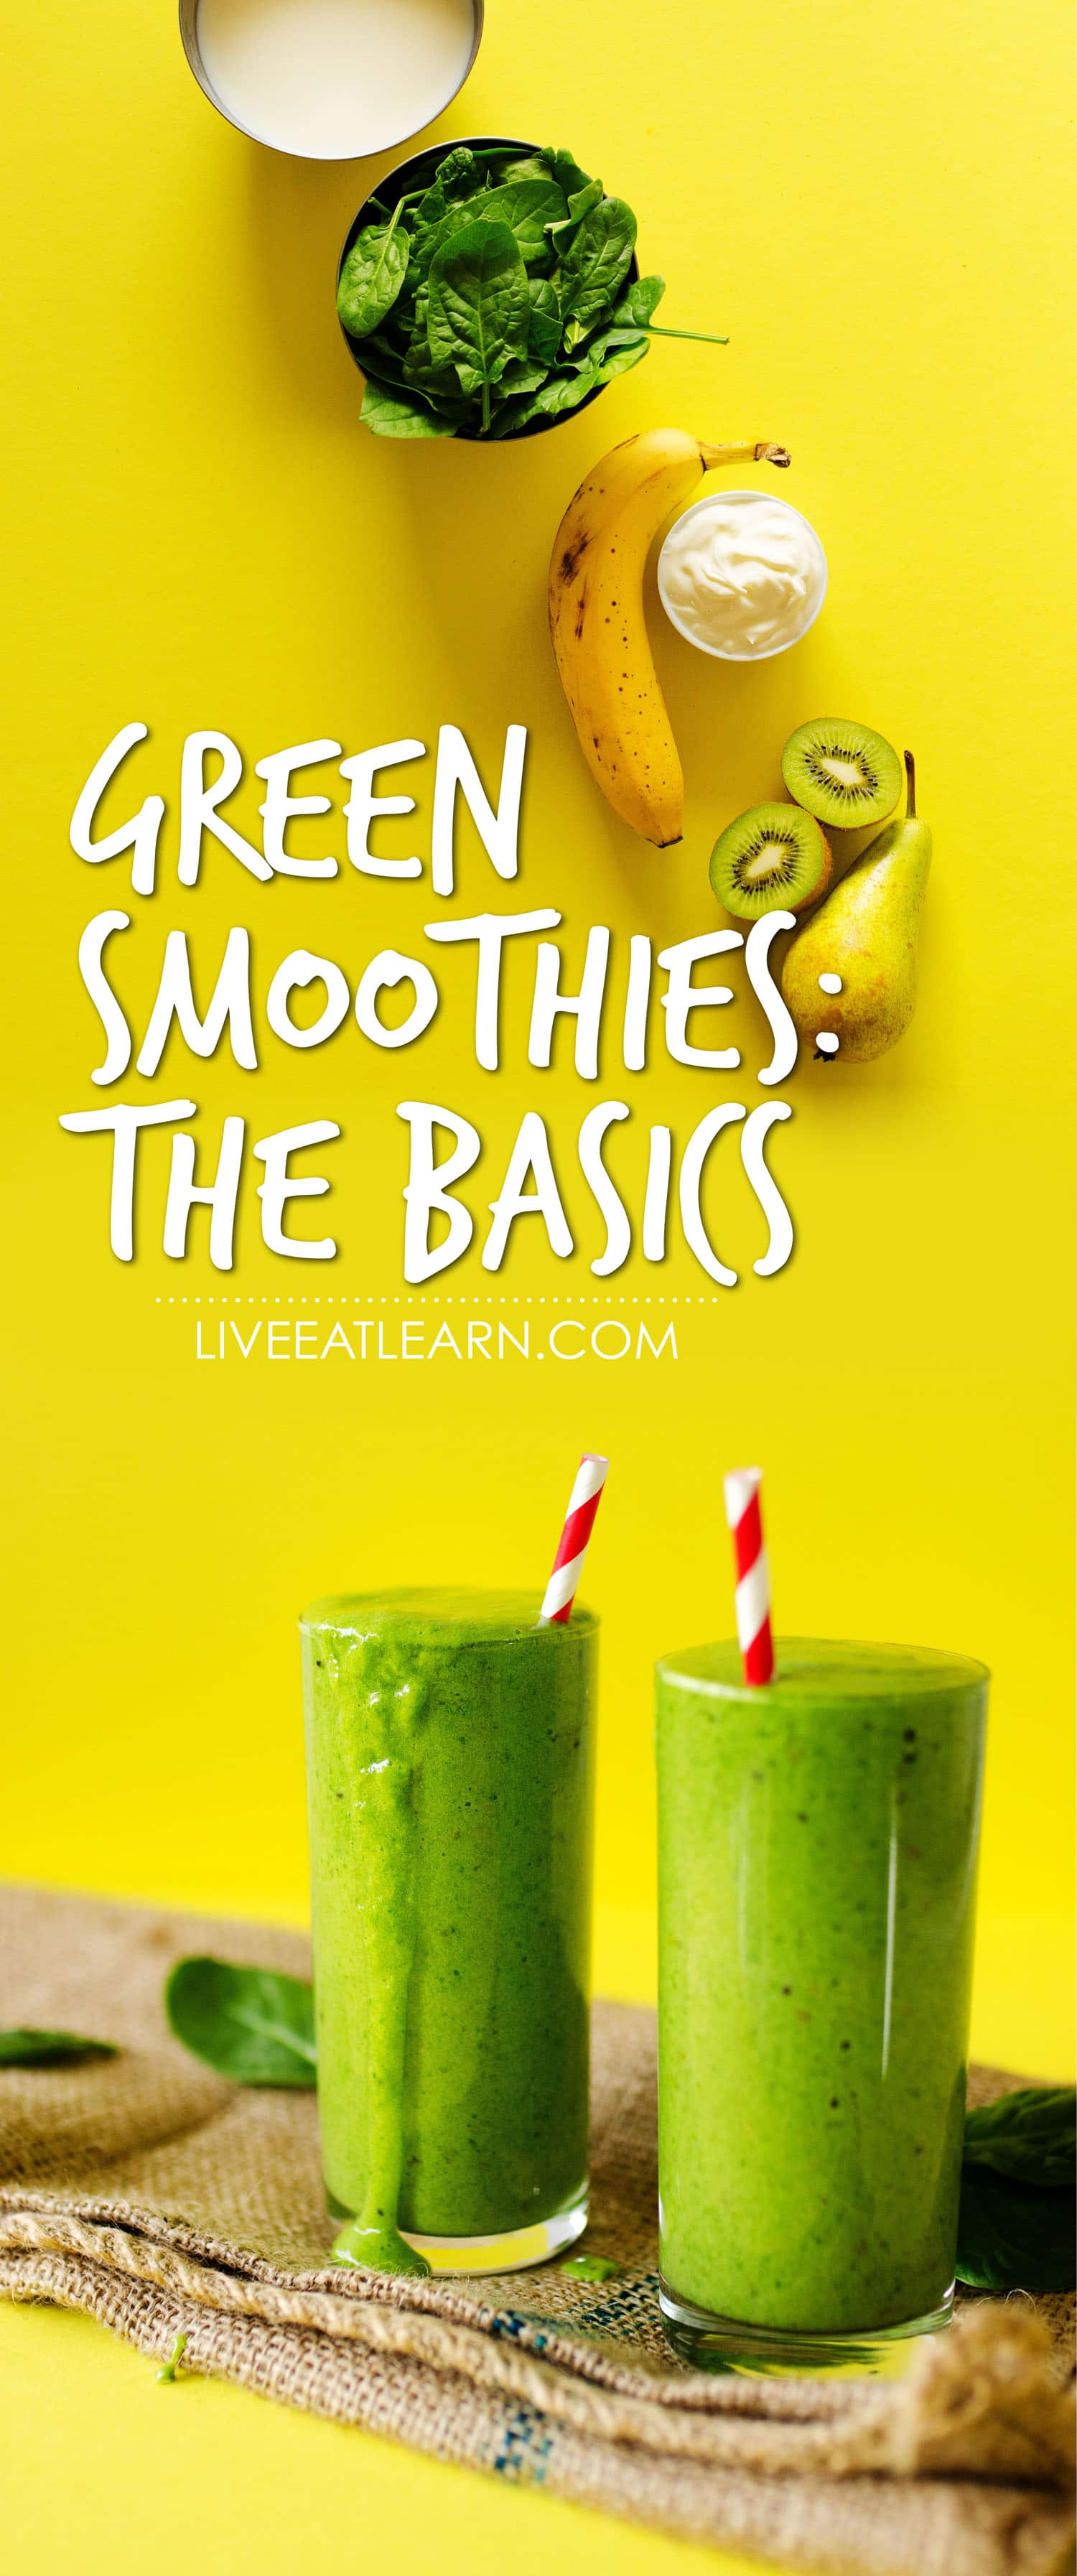 Want to try green smoothies but don't know where to start? This simple guide to the perfect healthy green smoothie recipe takes you from zero to deliciously green in just 5 minutes! Perfect as an on-the-go vegan breakfast, a healthy snack, or an energizing healthy drink. #greensmoothie #smoothies #smoothierecipes